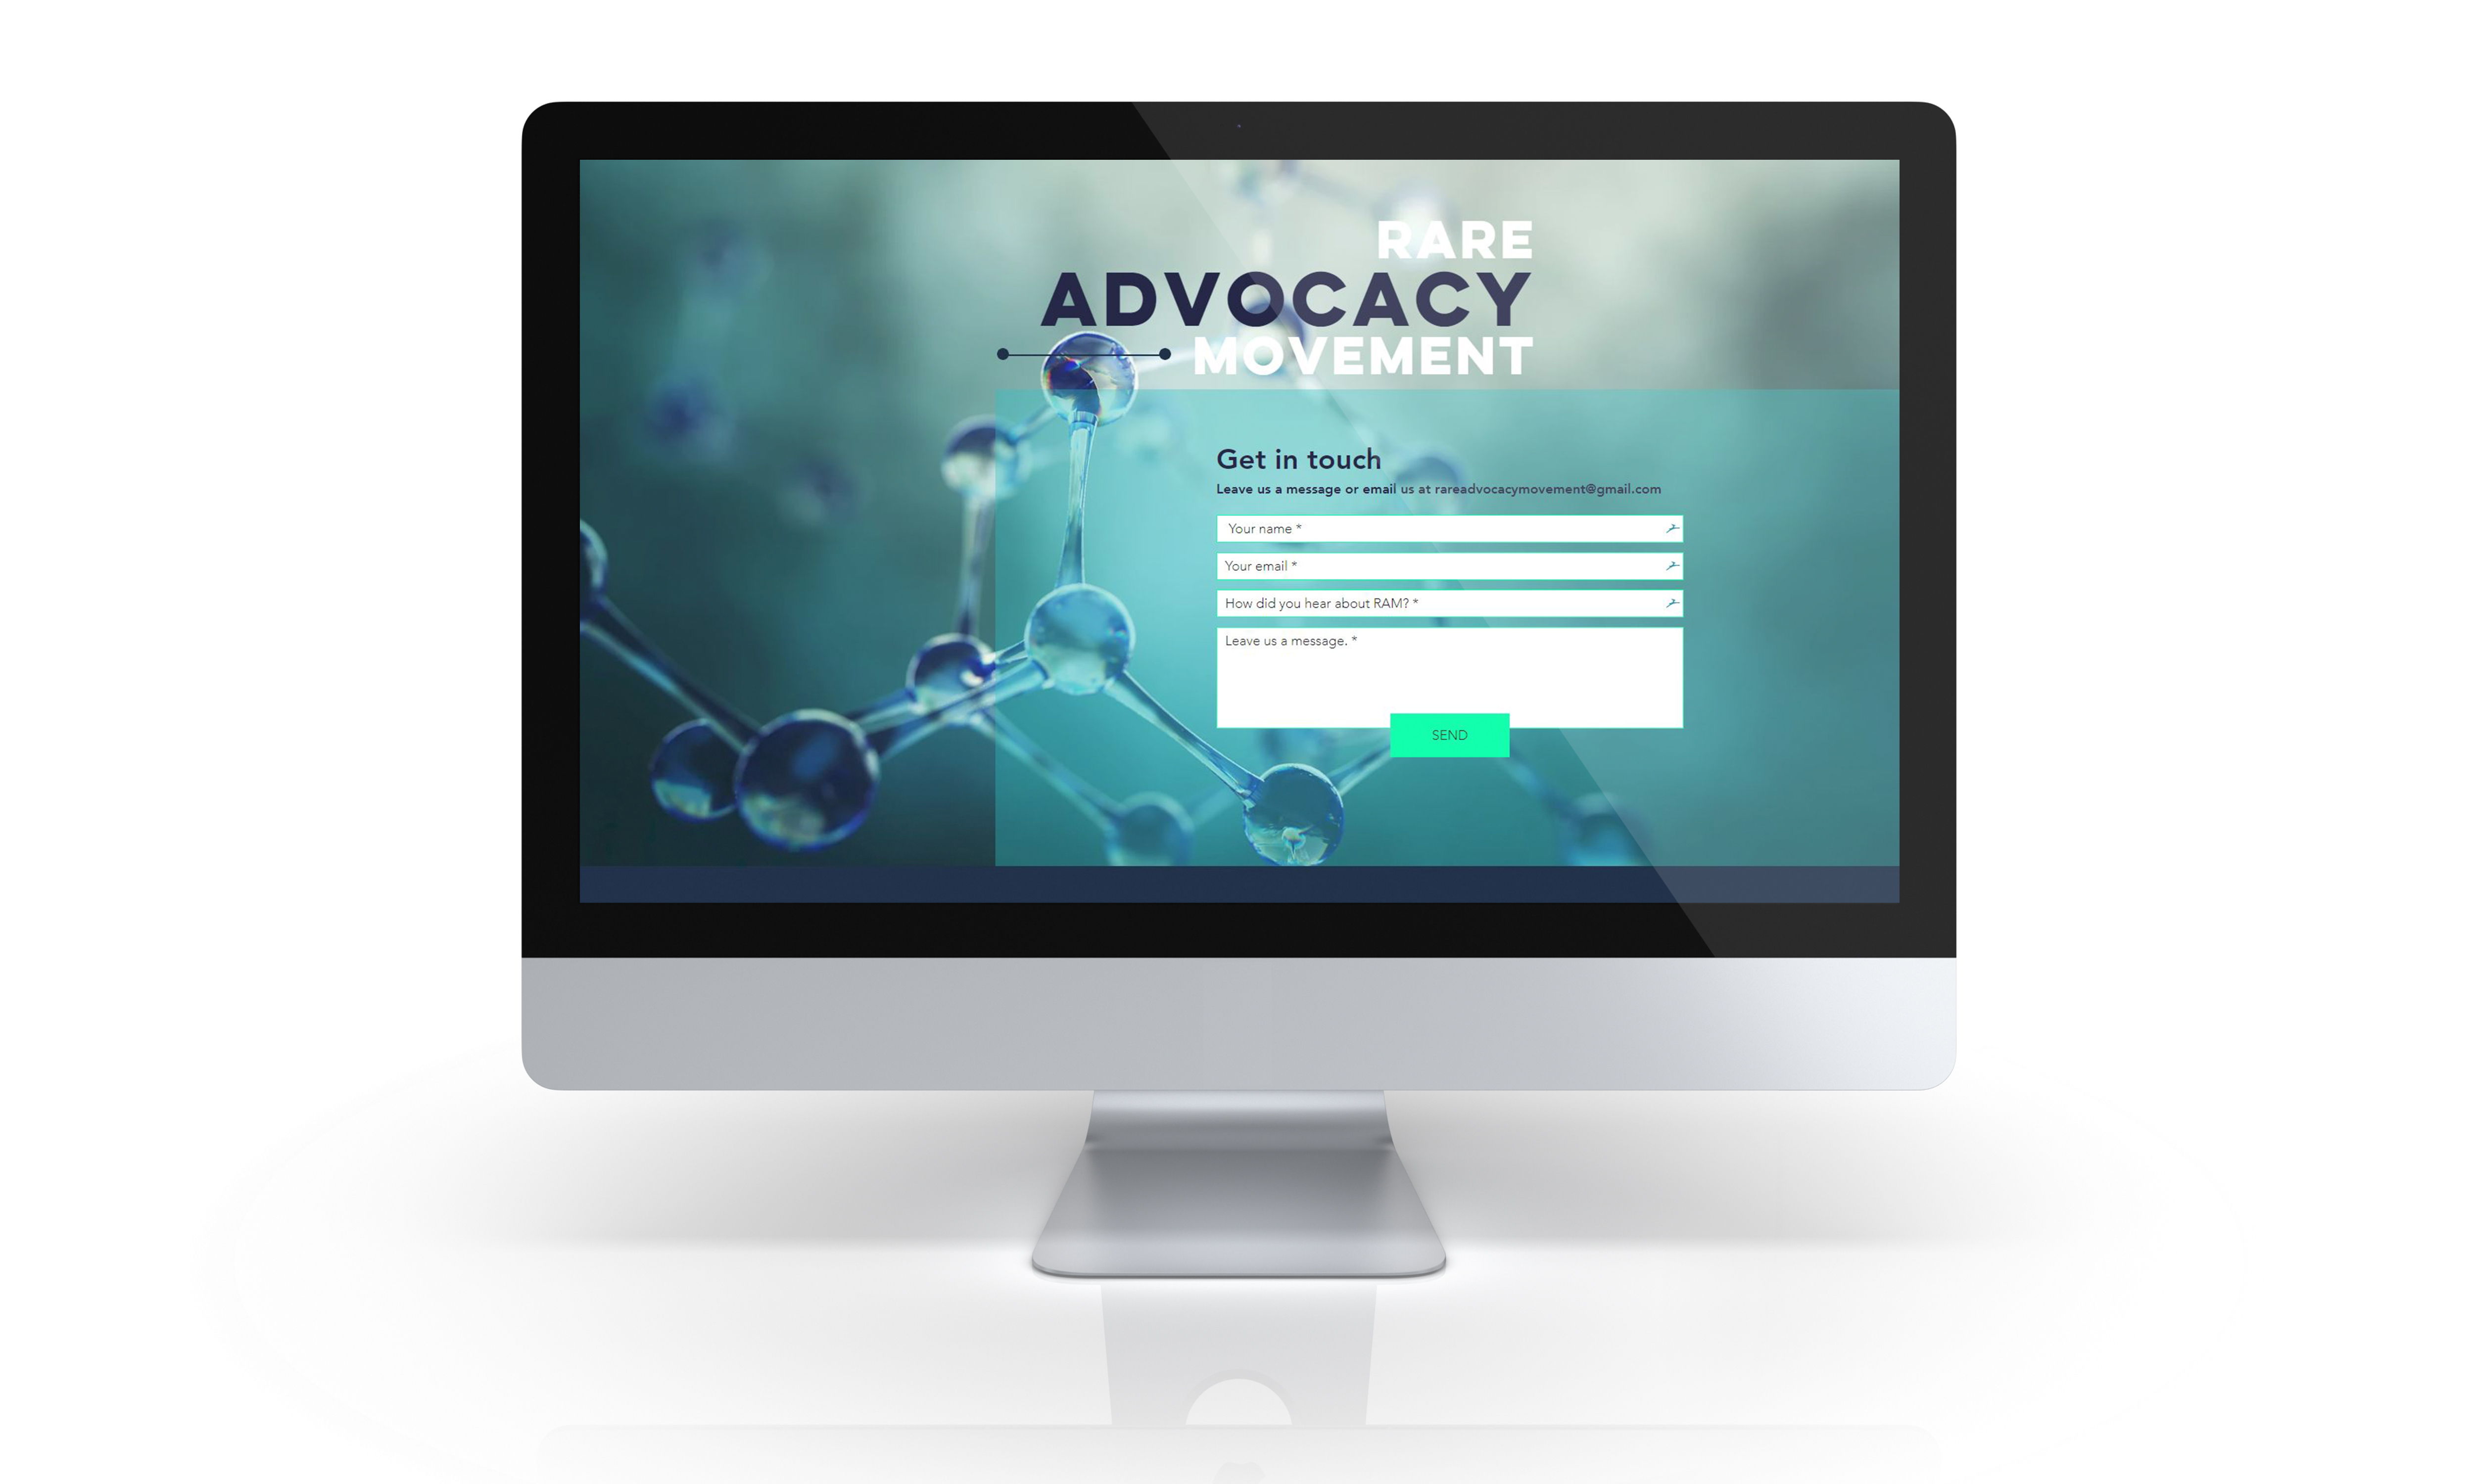 Contact Page of Website